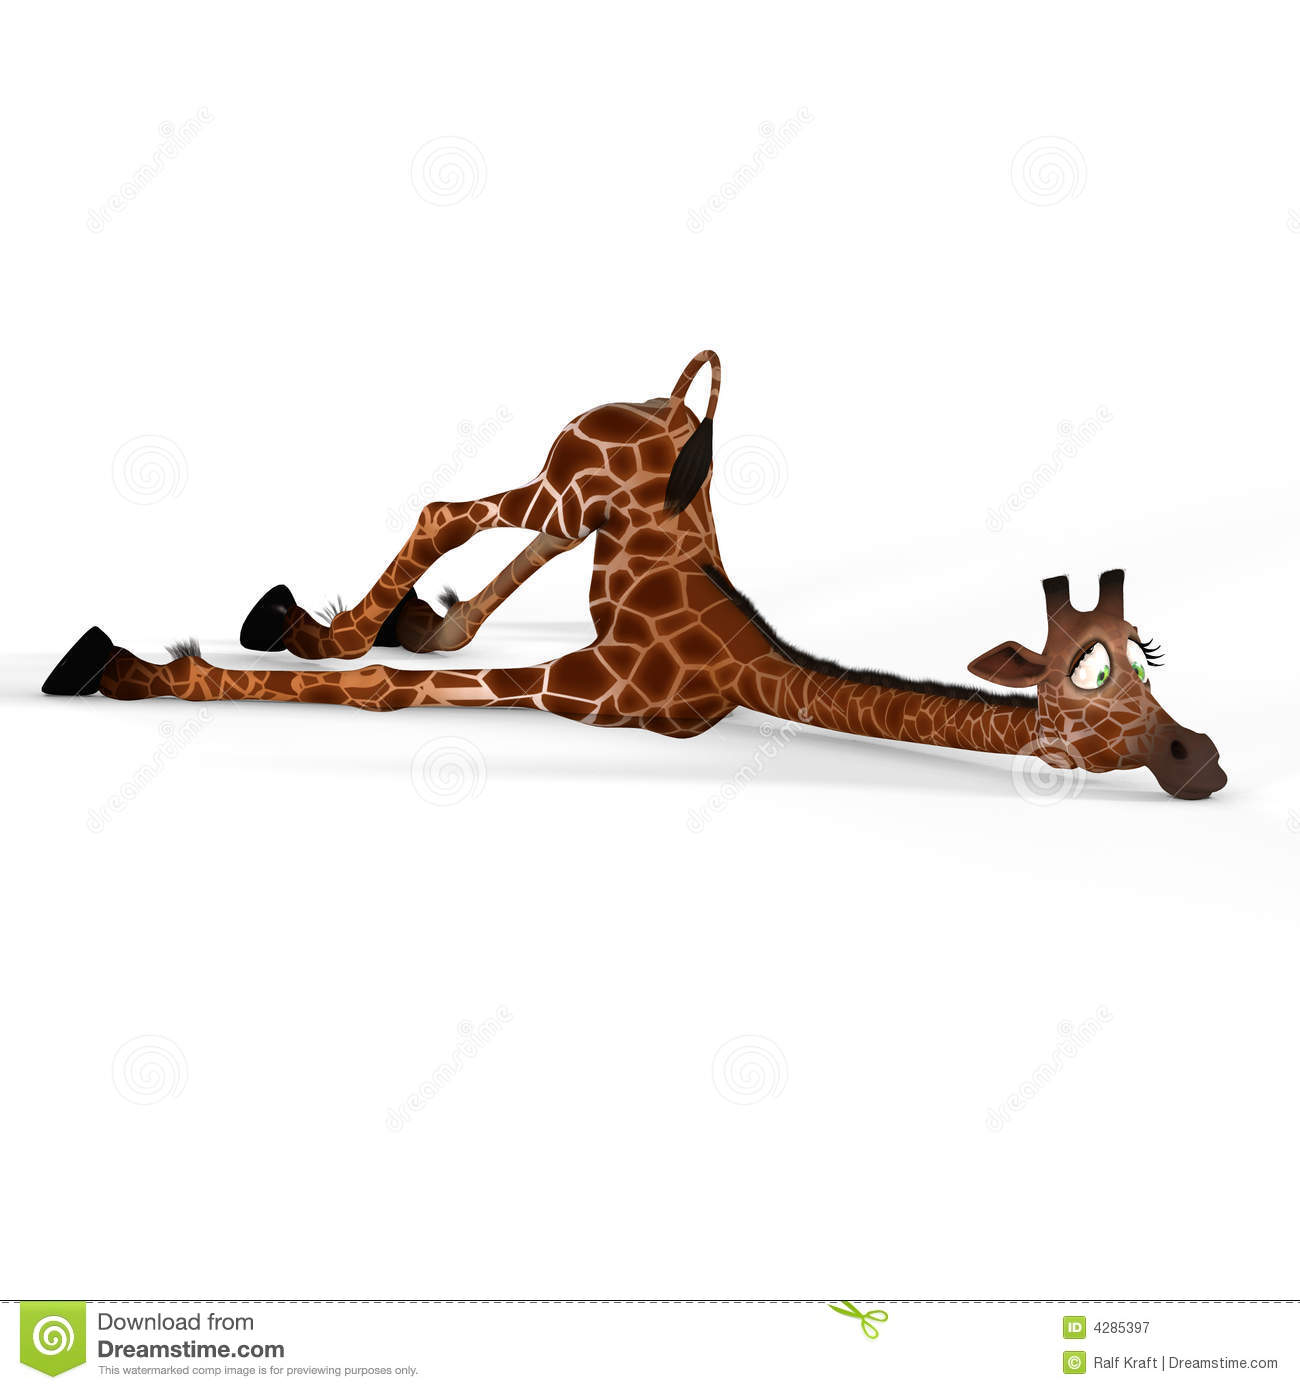 Giraffe Quotes Funny: Cute Giraffe Quotes And Sayings. QuotesGram